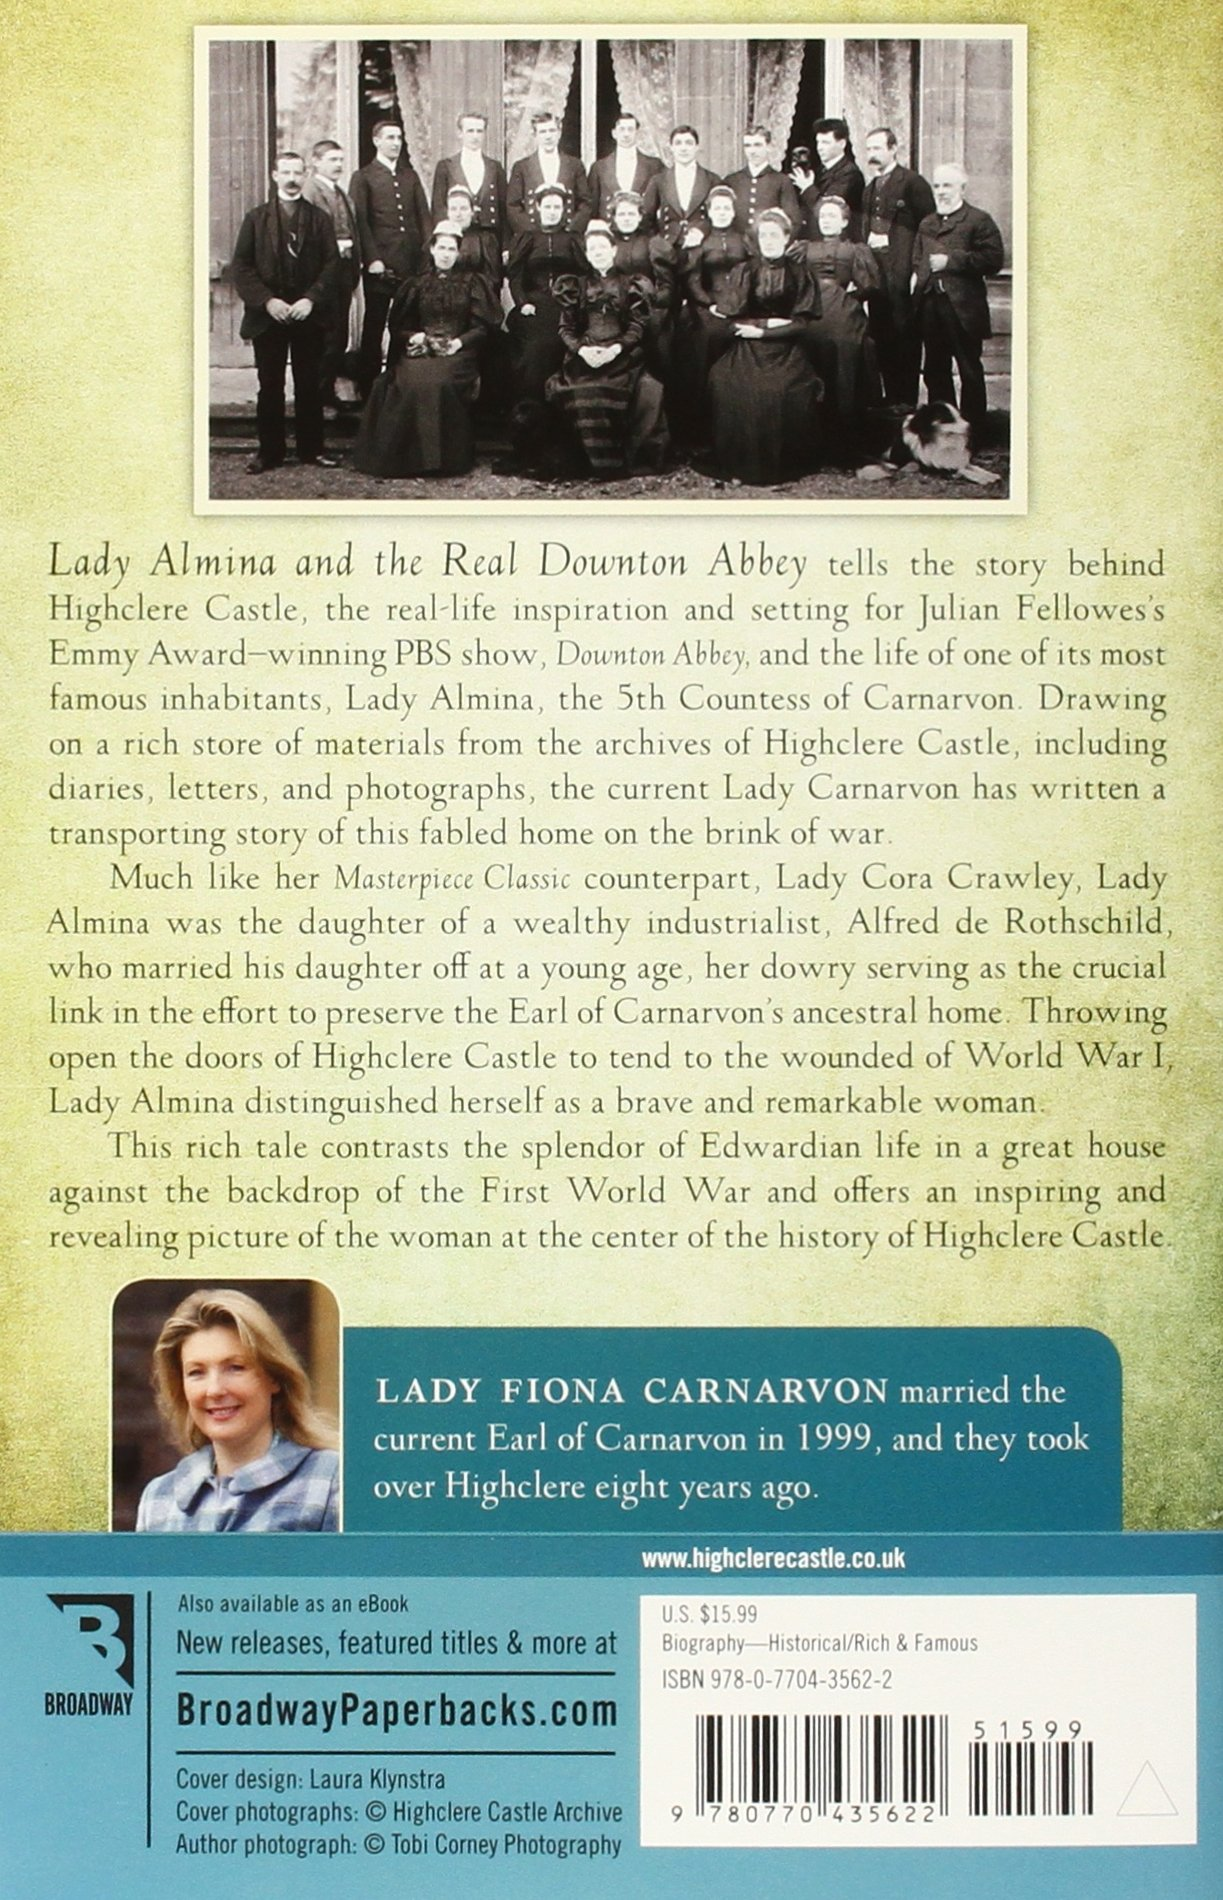 Lady almina and the real downton abbey the lost legacy of highclere lady almina and the real downton abbey the lost legacy of highclere castle countess of fiona carnarvon 8580001045177 amazon books fandeluxe Image collections